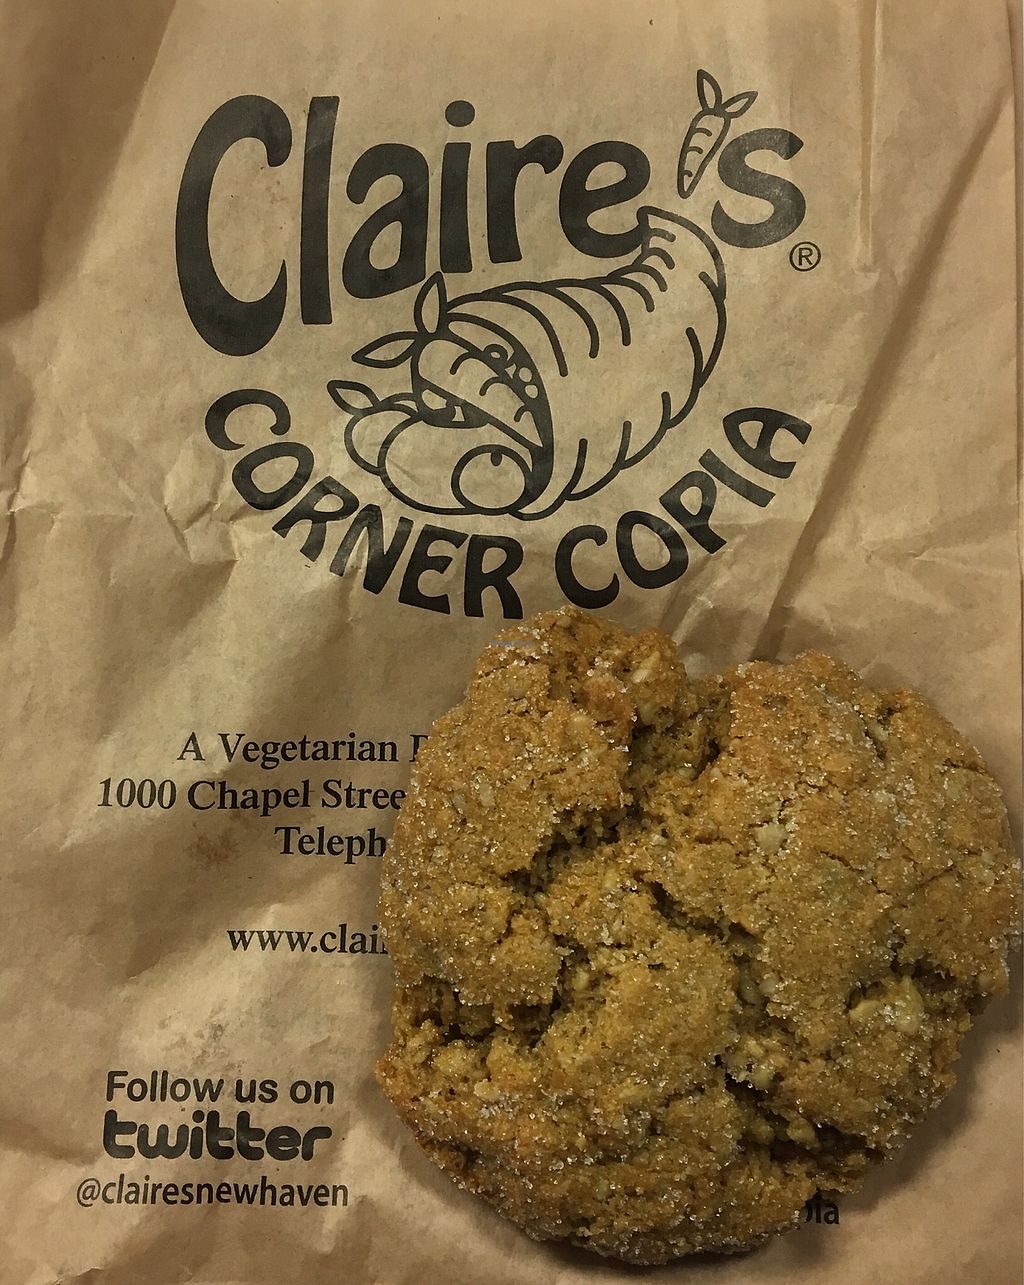 """Photo of Claire's Corner Copia  by <a href=""""/members/profile/Thepennsyltuckyvegan"""">Thepennsyltuckyvegan</a> <br/>Sunbutter Cookie <br/> January 11, 2018  - <a href='/contact/abuse/image/1781/345613'>Report</a>"""